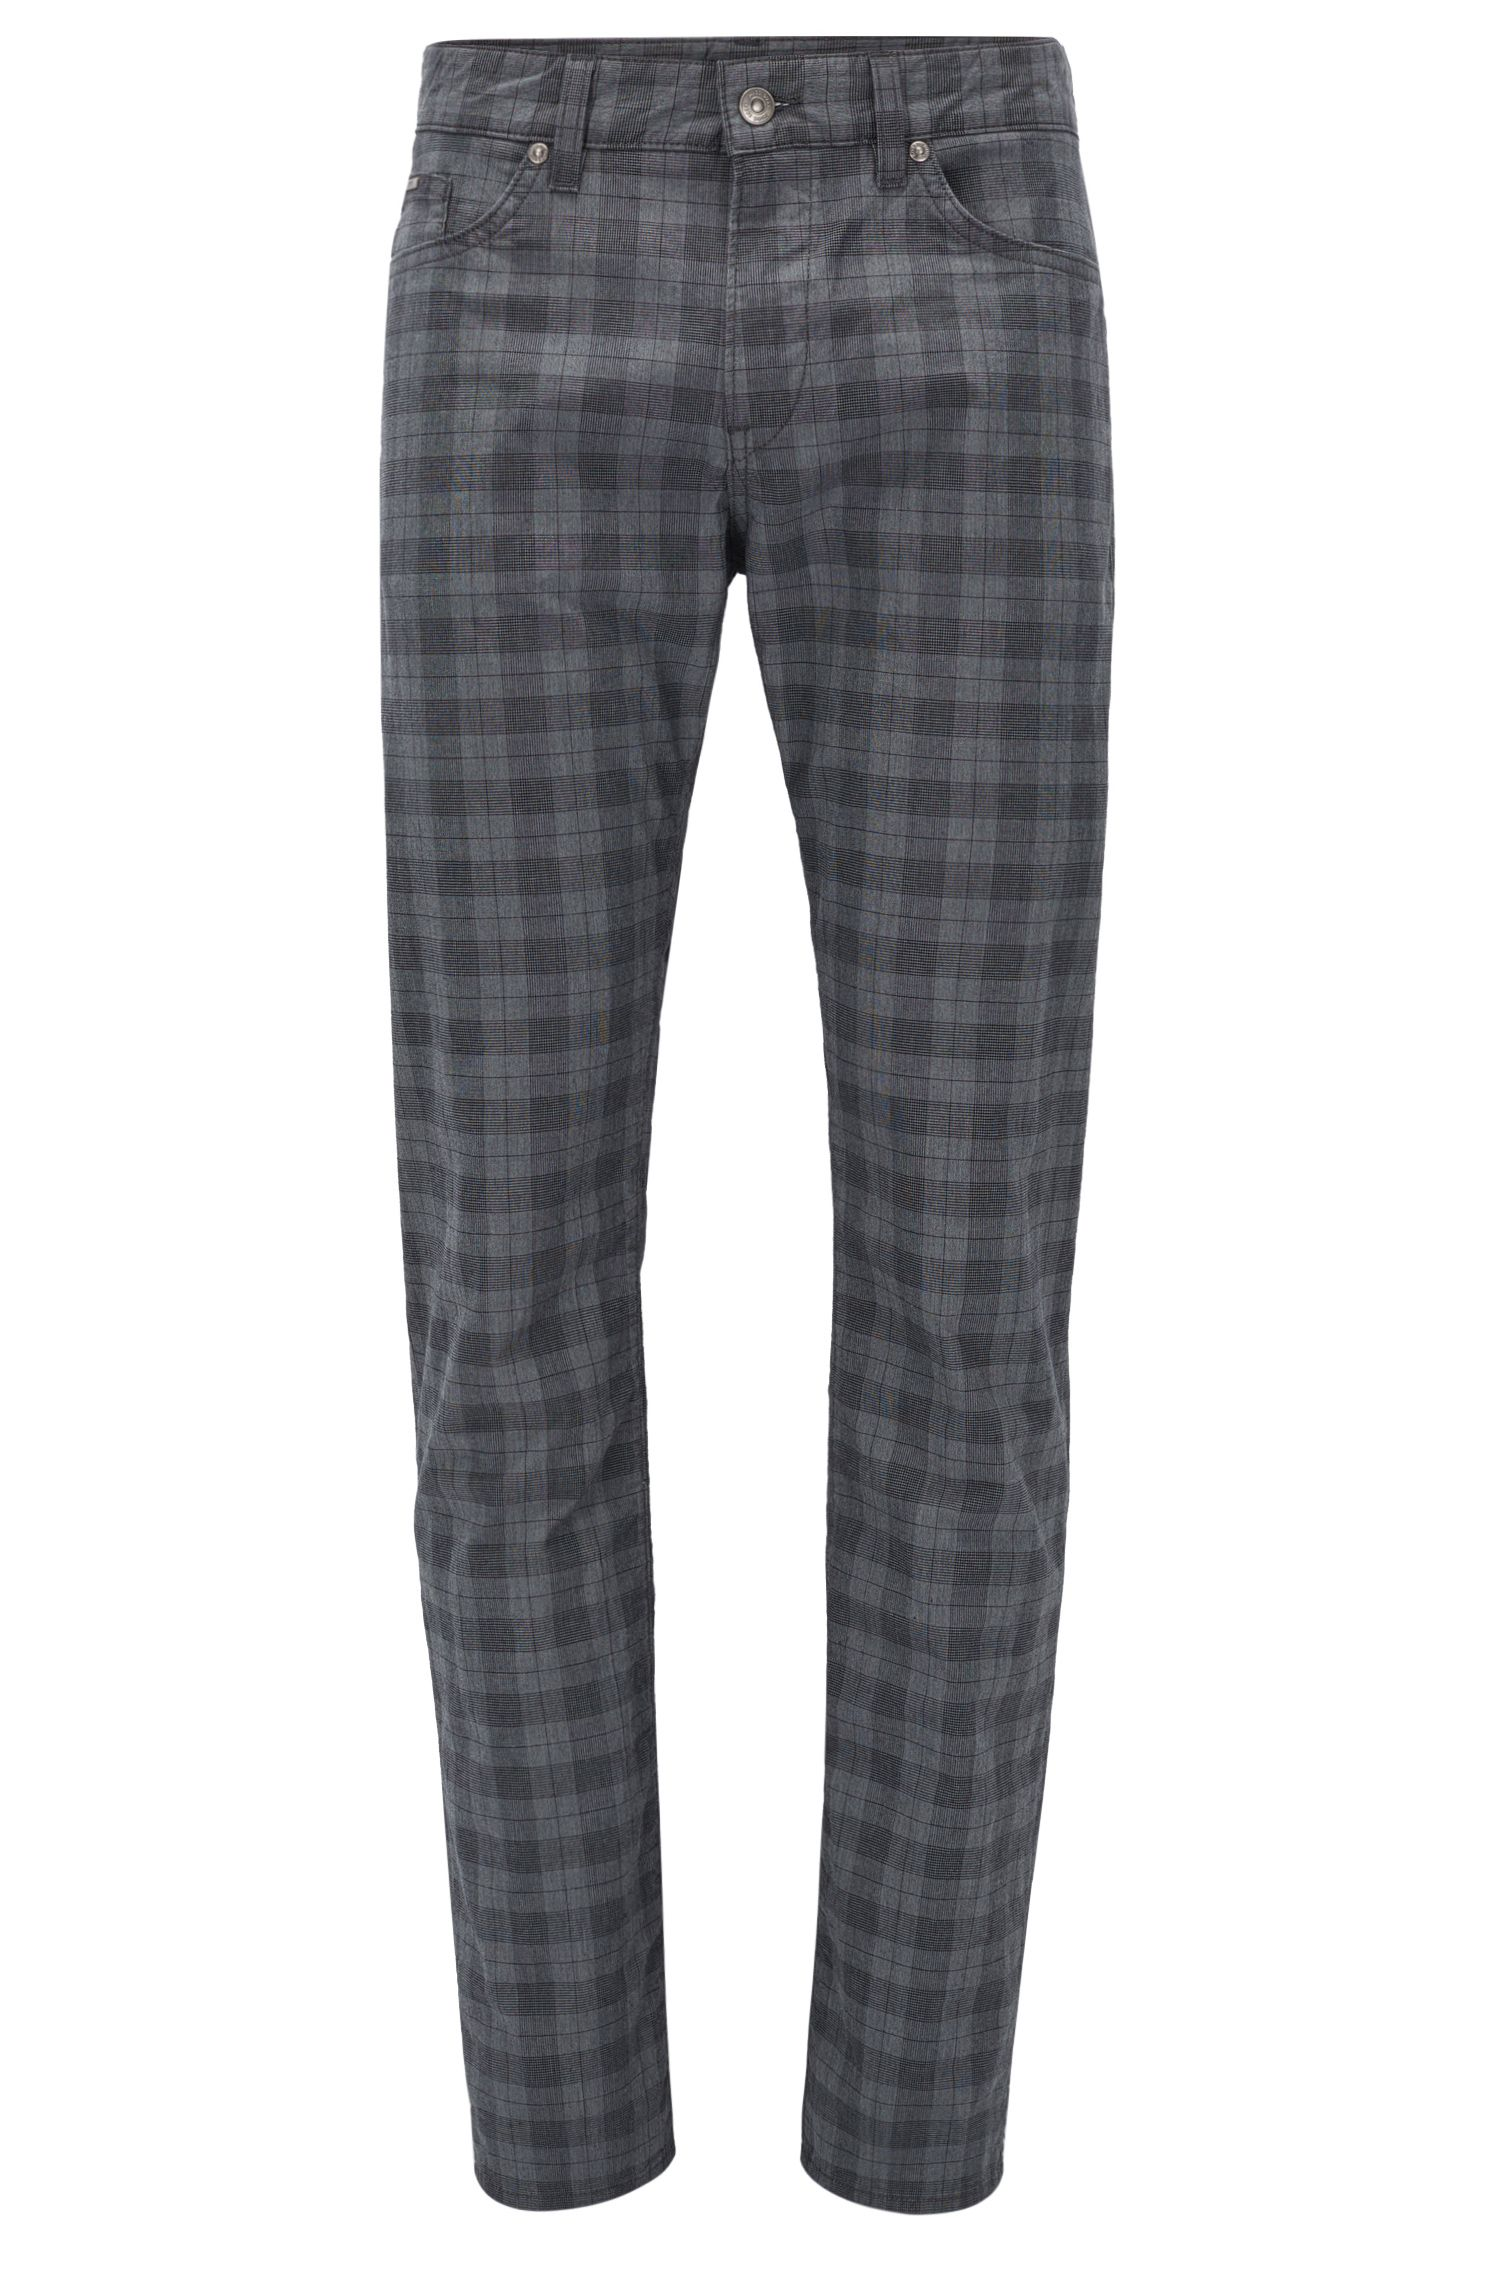 Plaid Stretch Cotton Pant, Slim Fit | Delaware, Open Grey